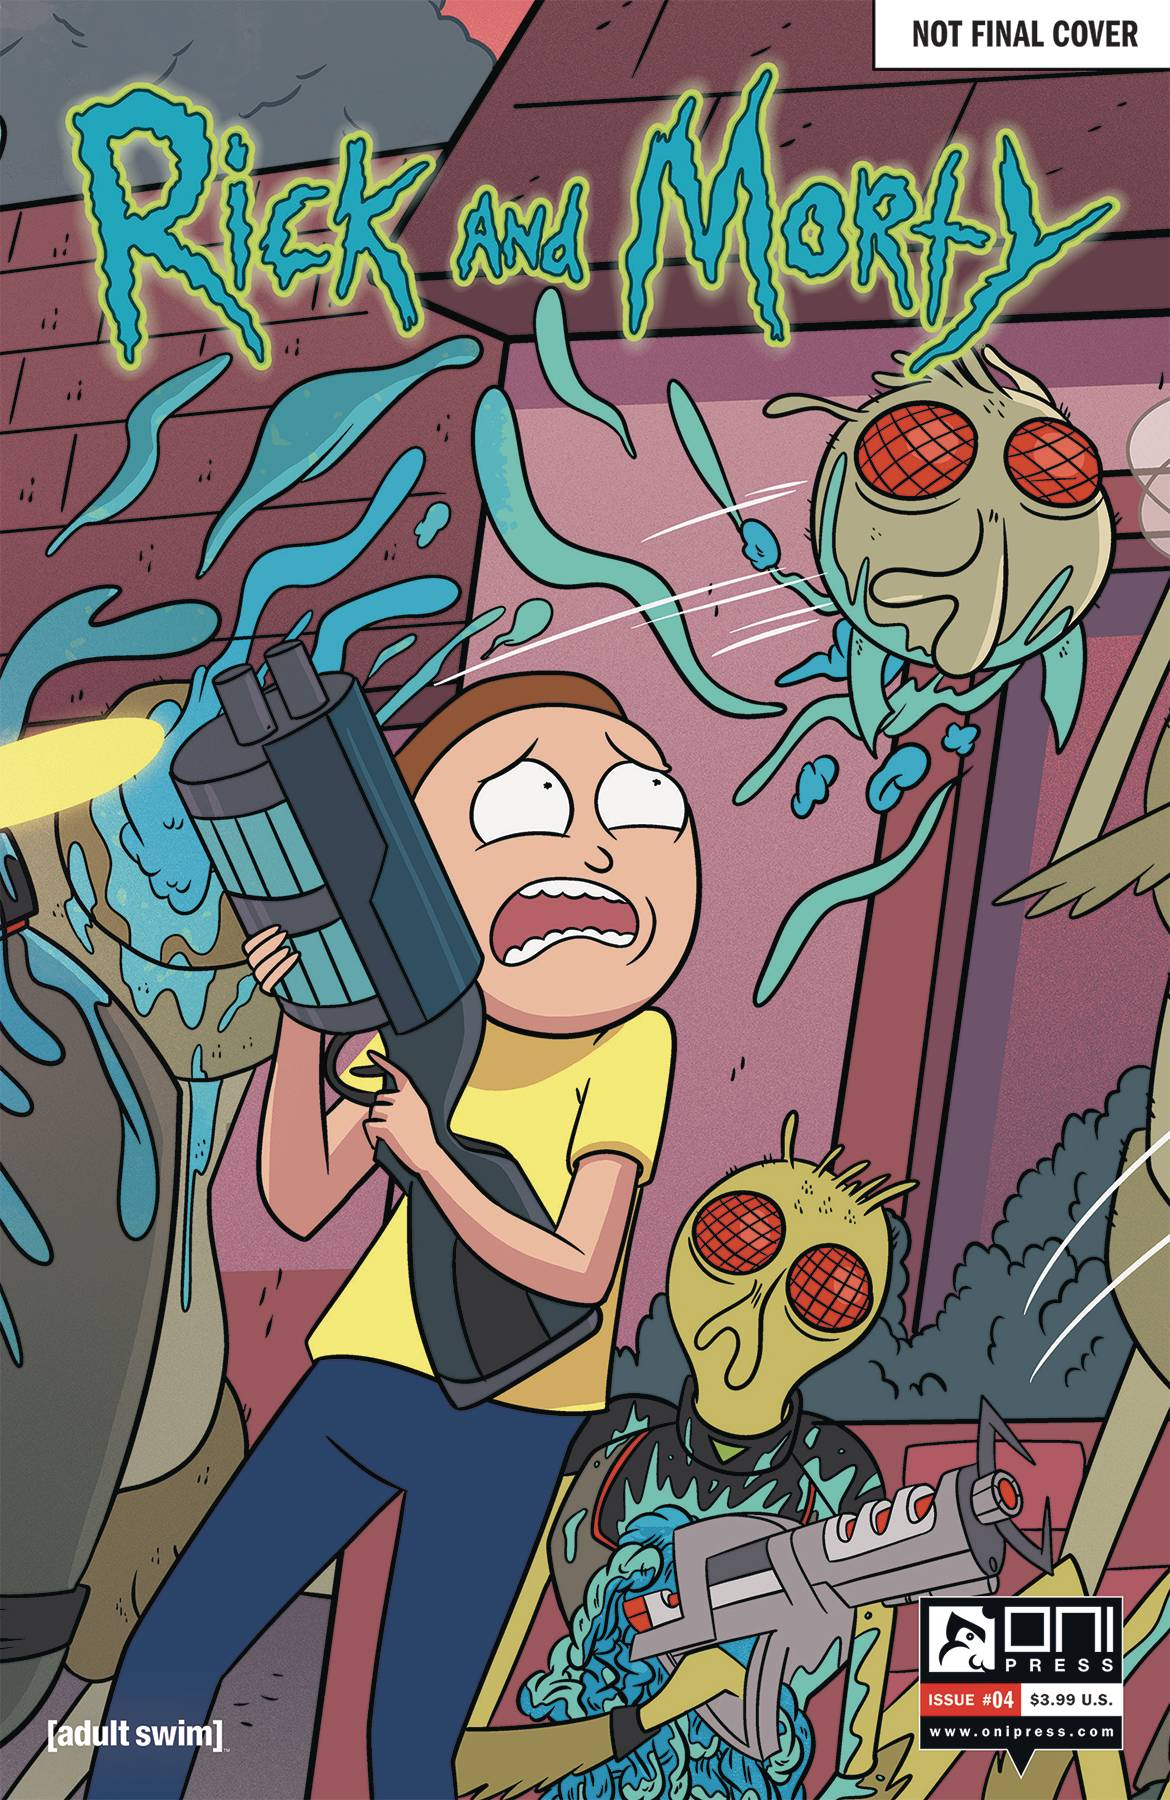 RICK & MORTY 4 50 ISSUES SPECIAL VAR.jpg